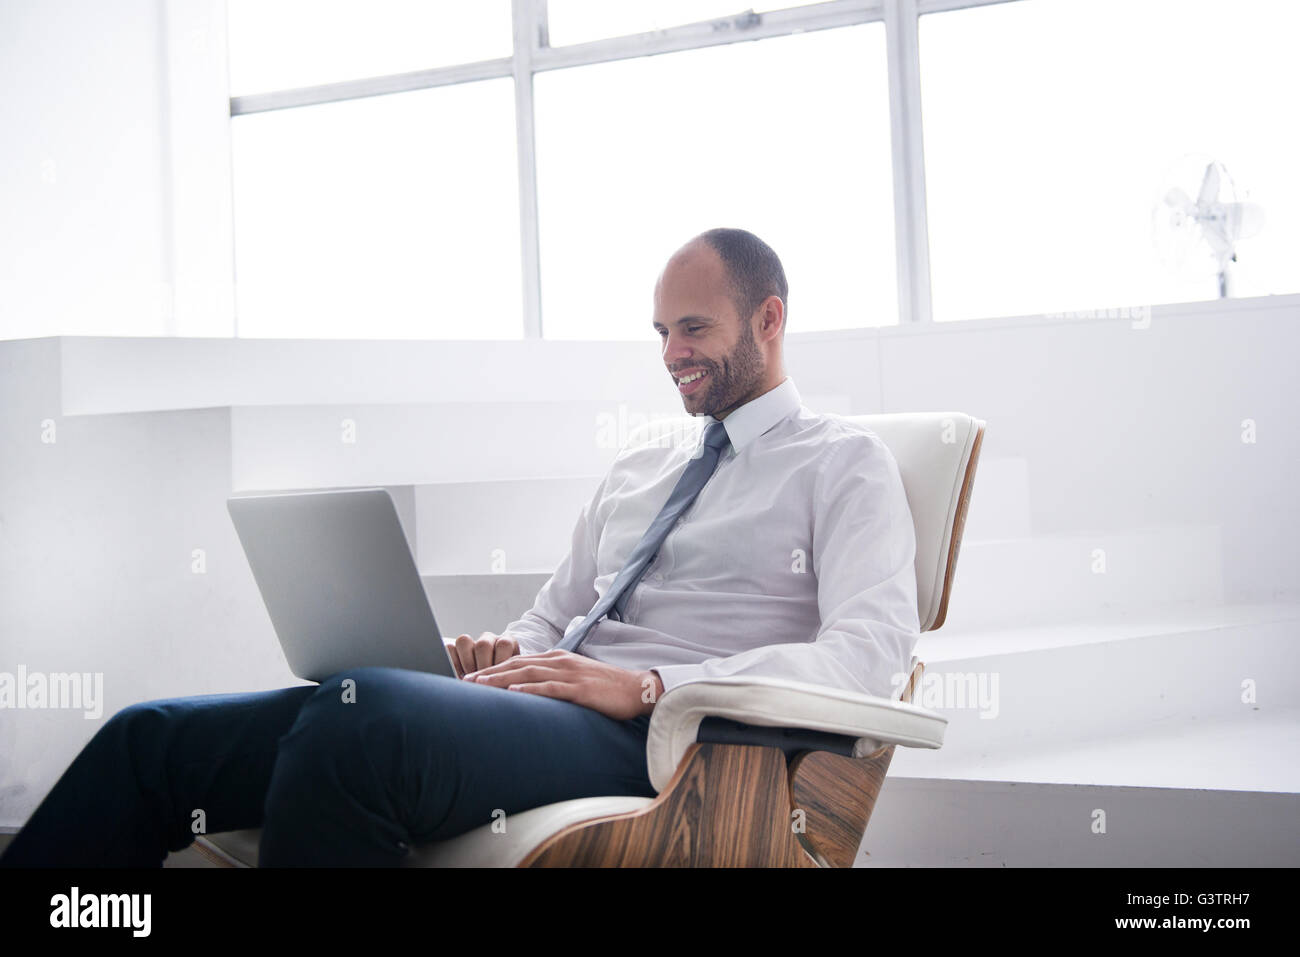 A professional man sitting making notes on a laptop in a business environment. - Stock Image